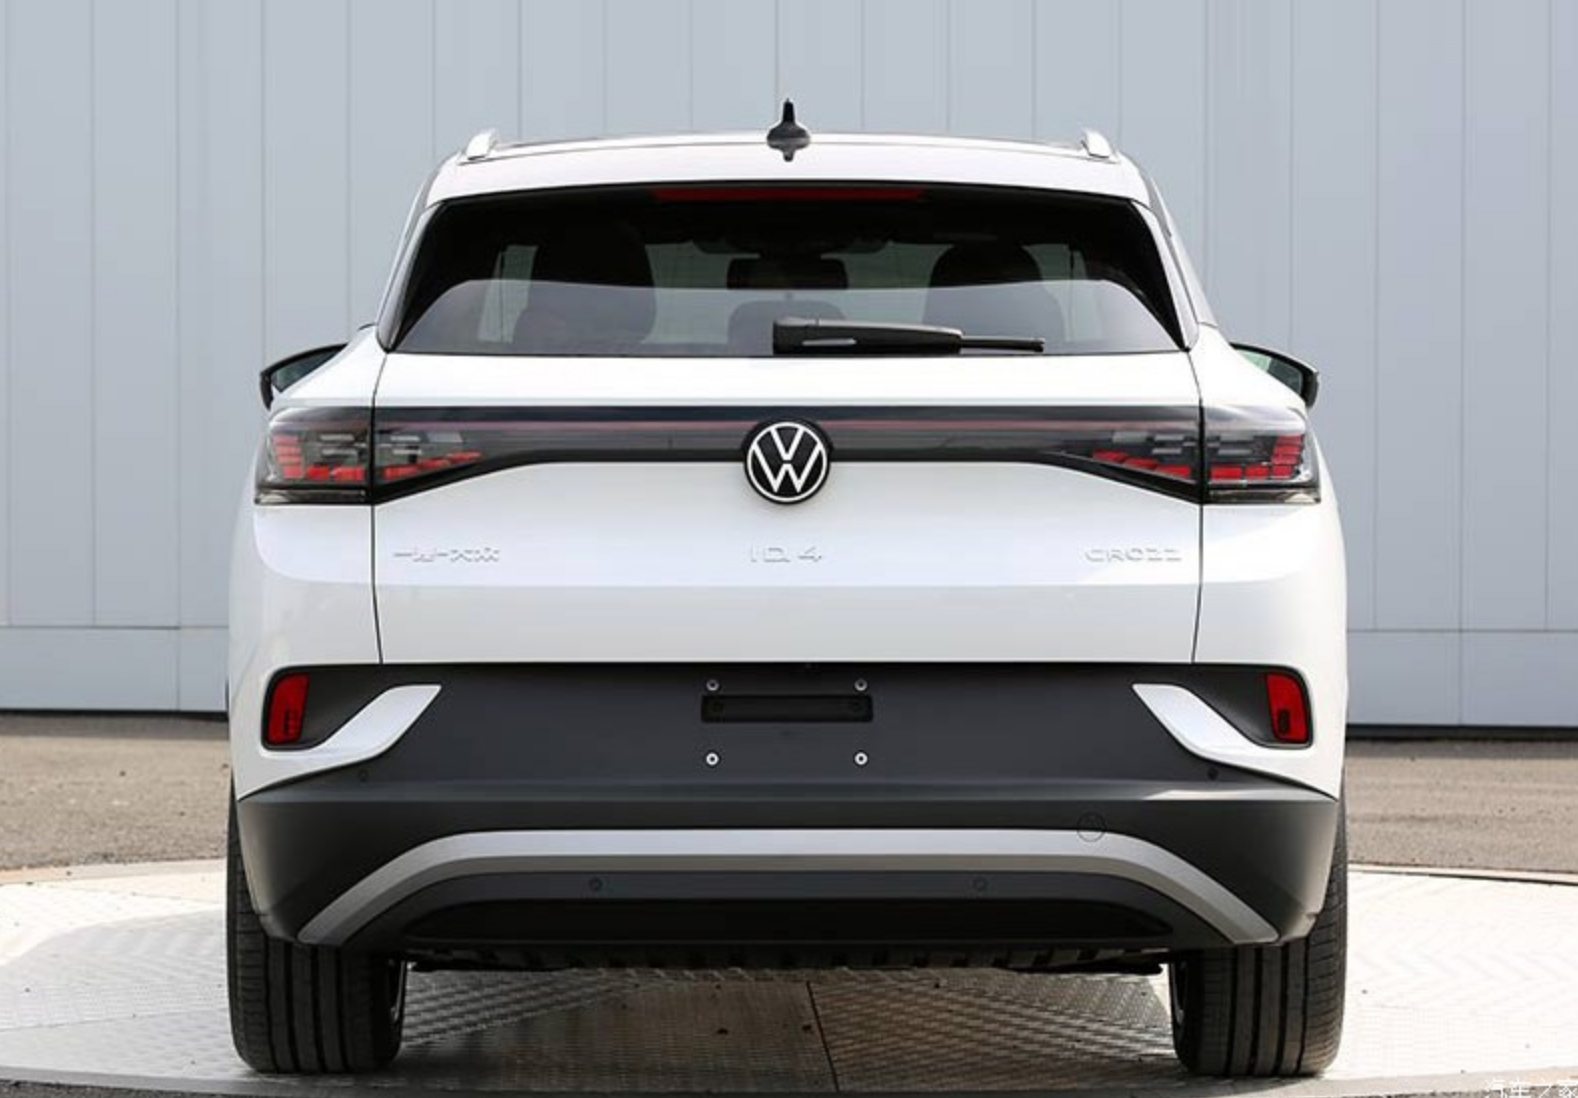 VW's ID.4 crossover.